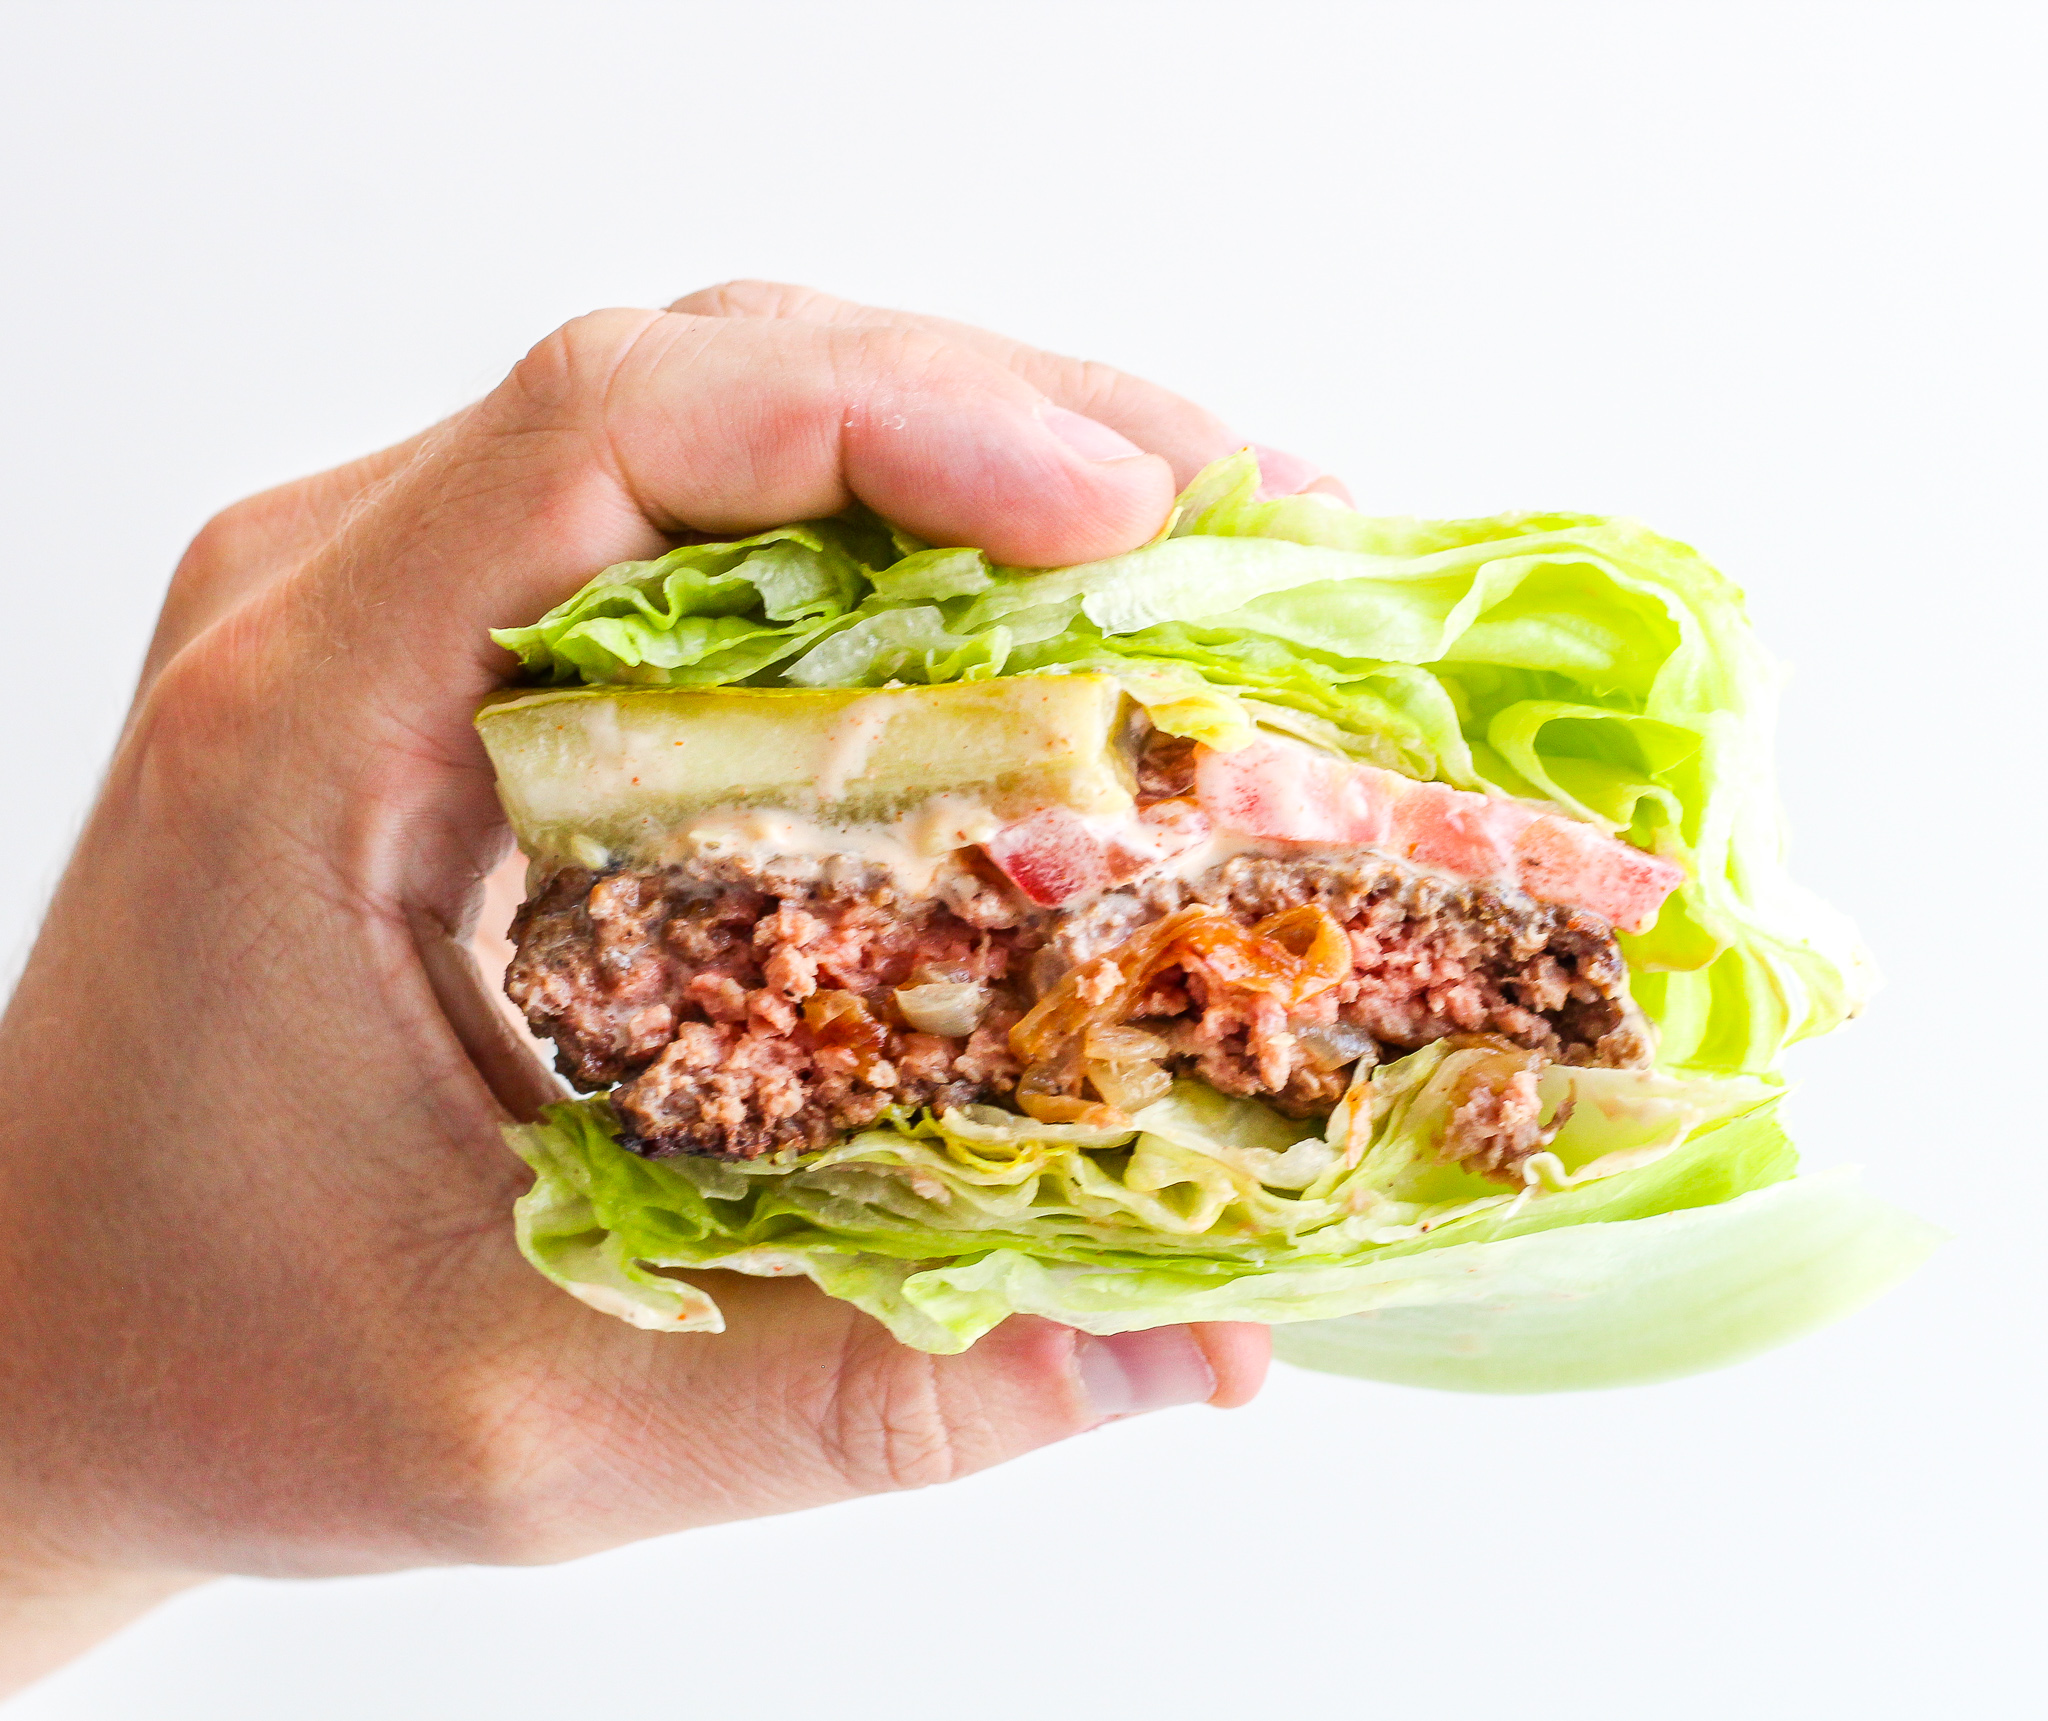 hand holding a Caramelized Onion Stuffed Burger